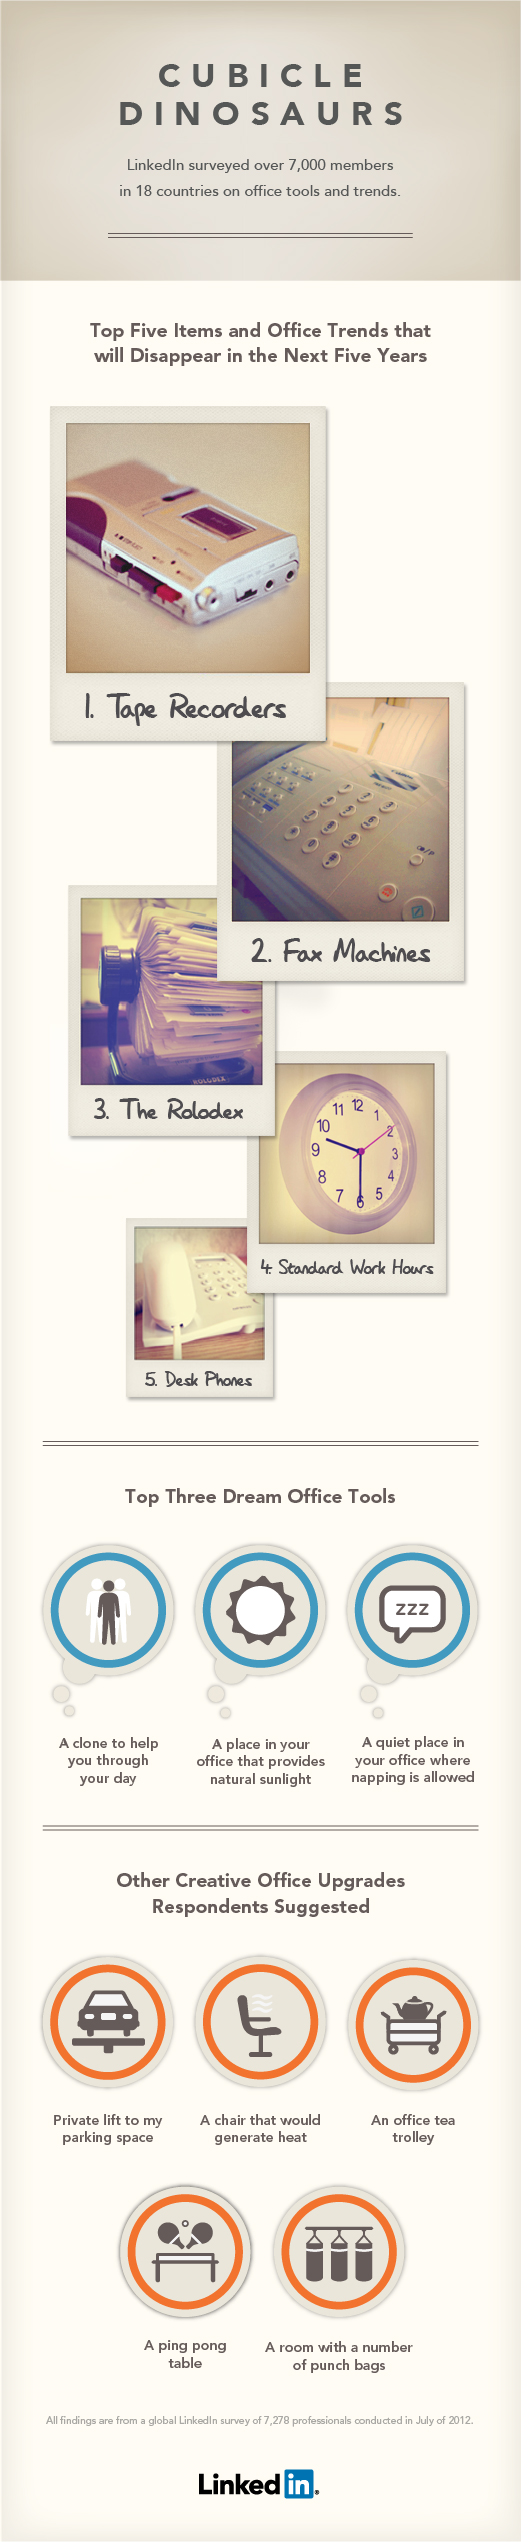 Linkedin Infographic Office tools and Trends